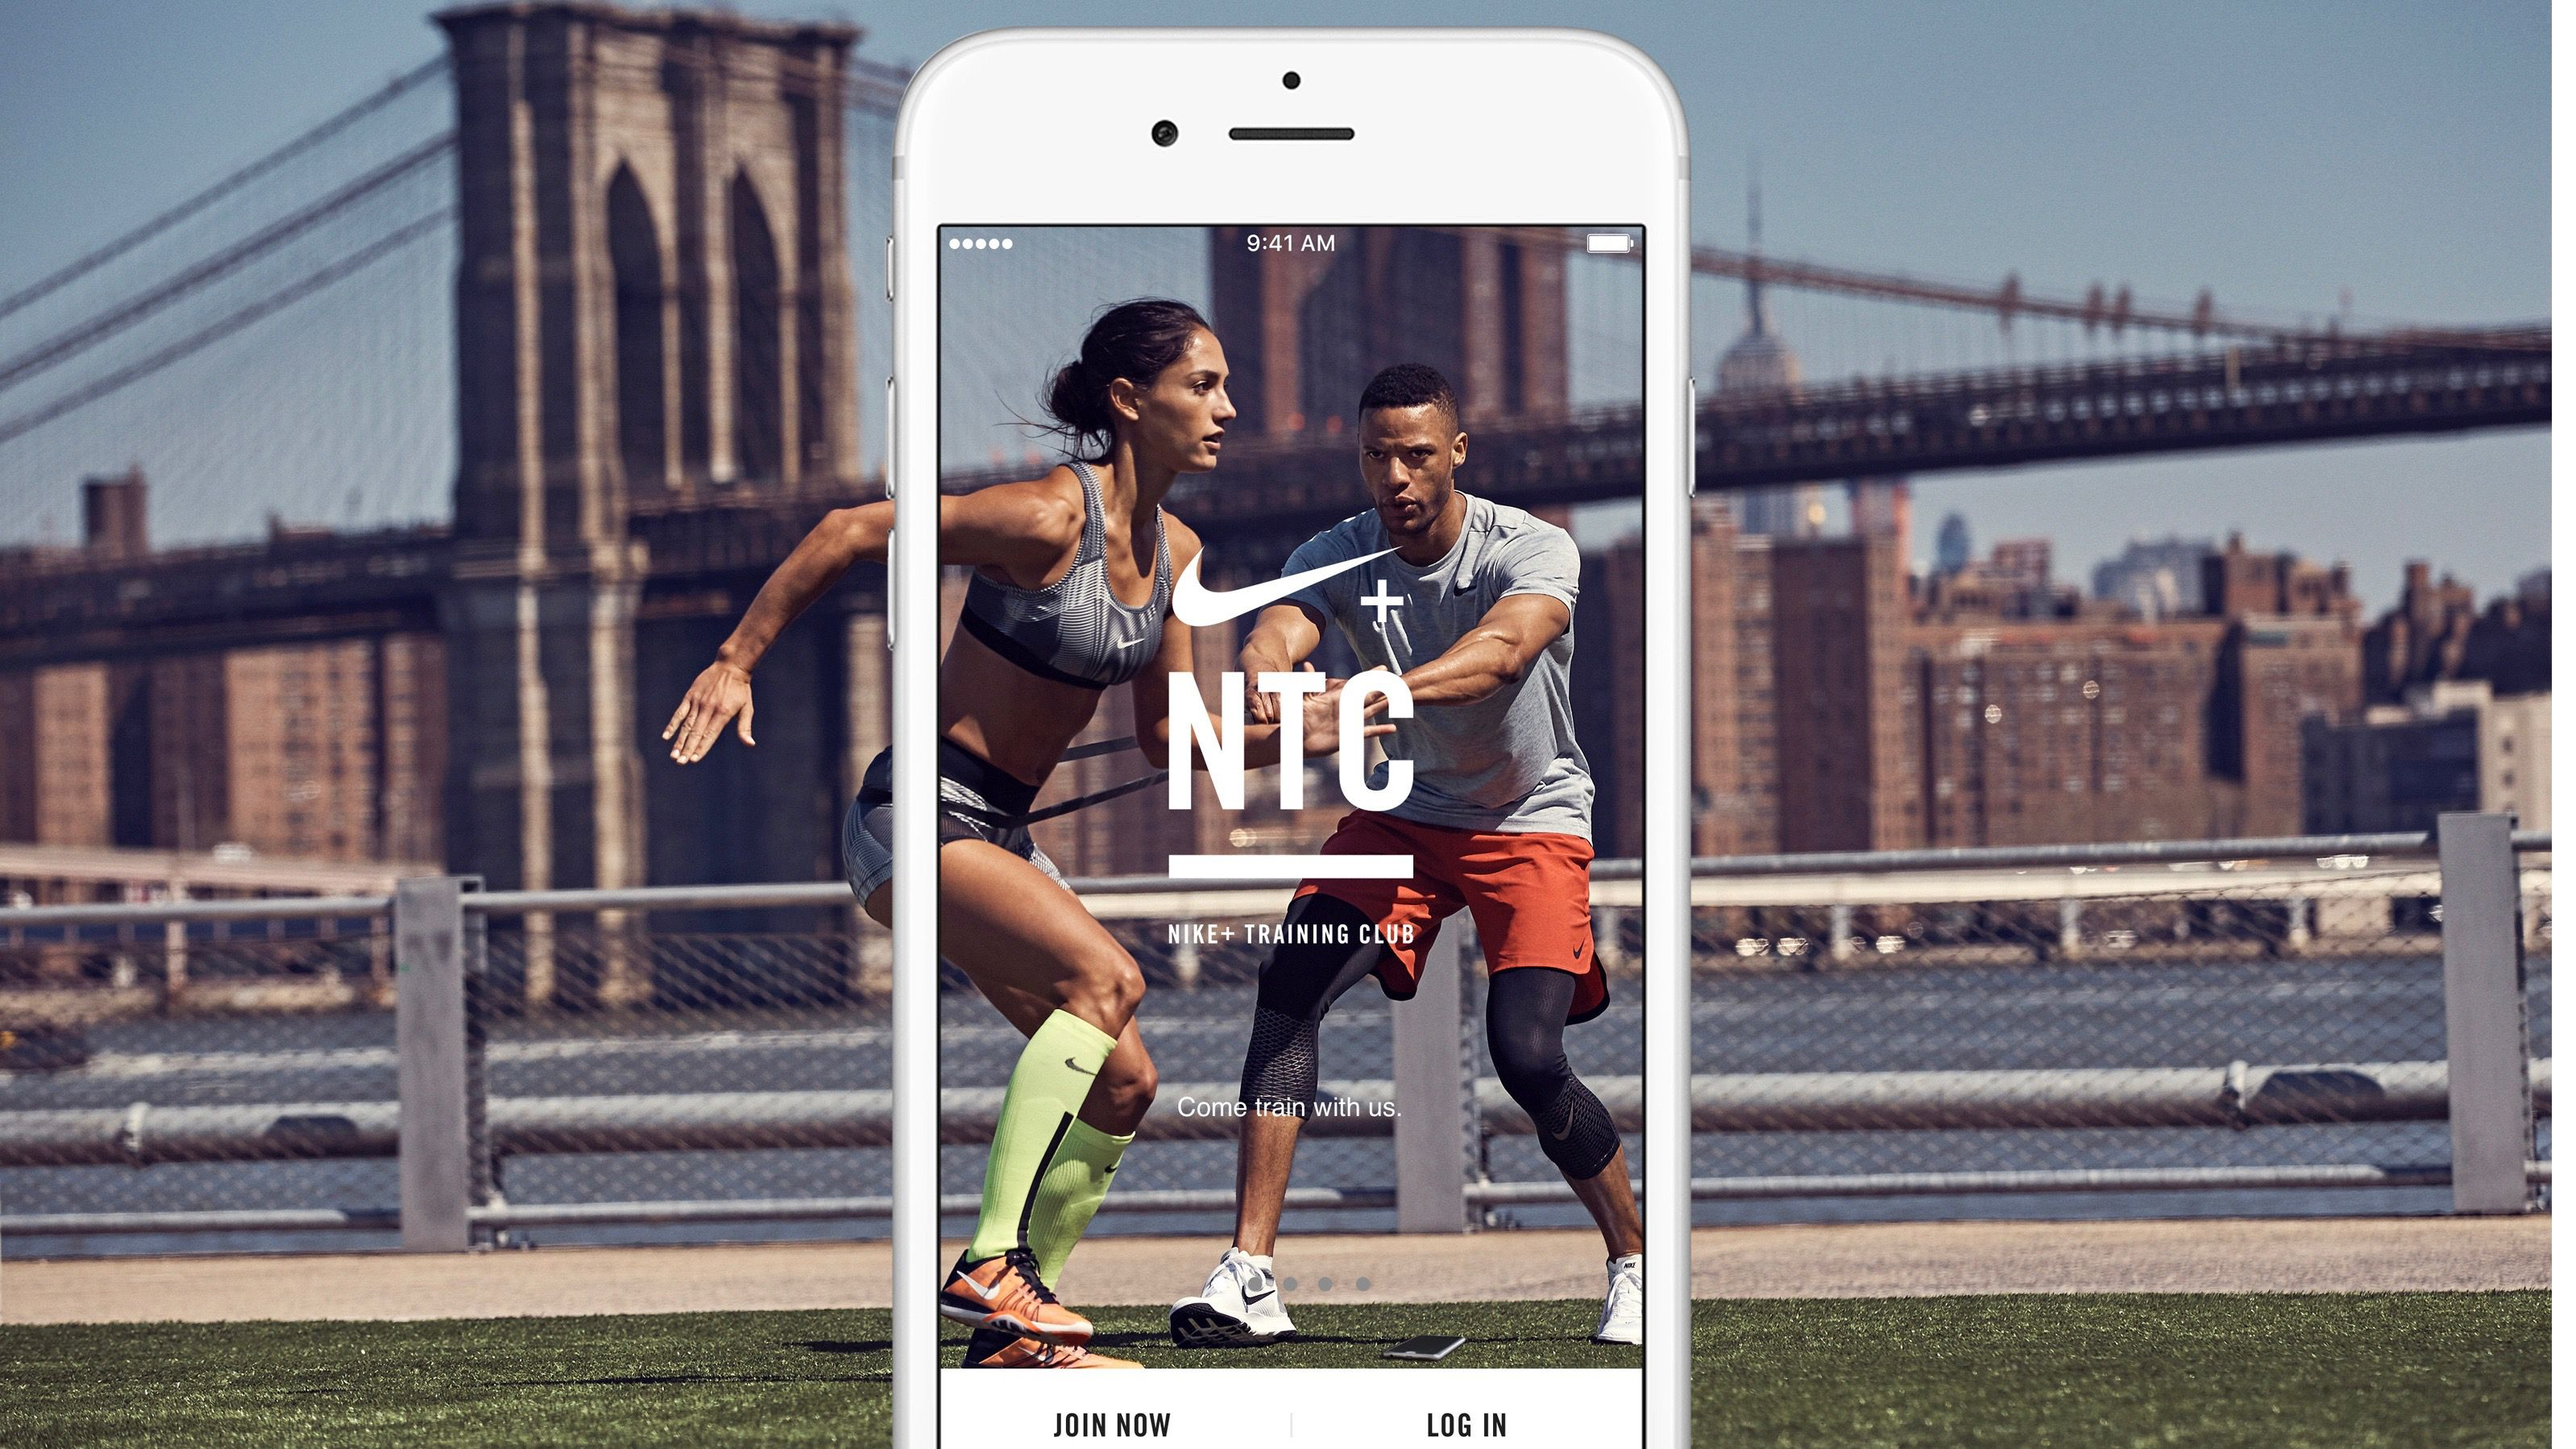 http://drippler.com/drip/how-get-fit-your-smartphone-less-20-minutes-day